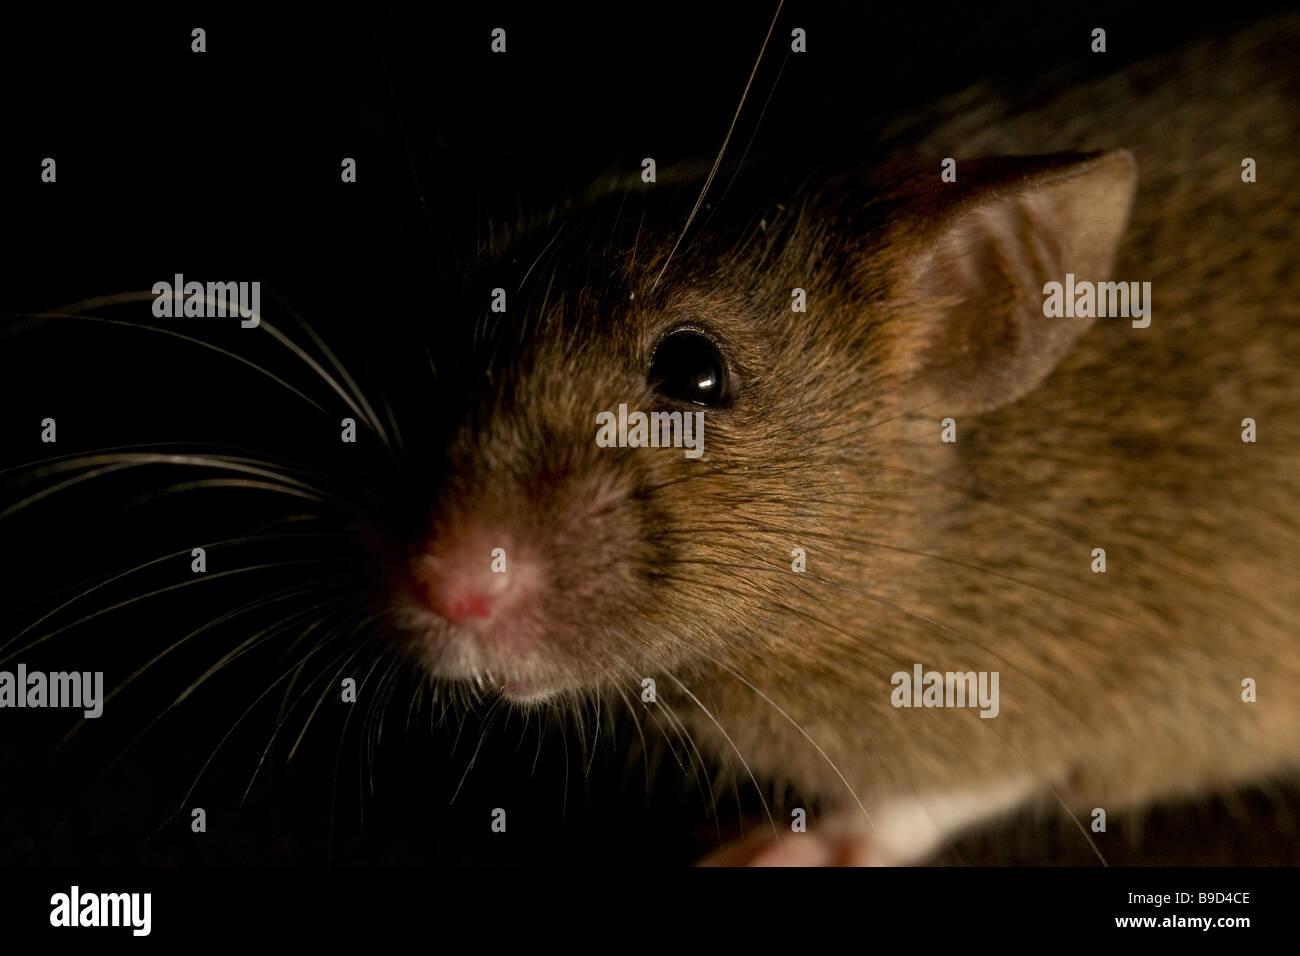 House Mouse Mus musculus - Stock Image